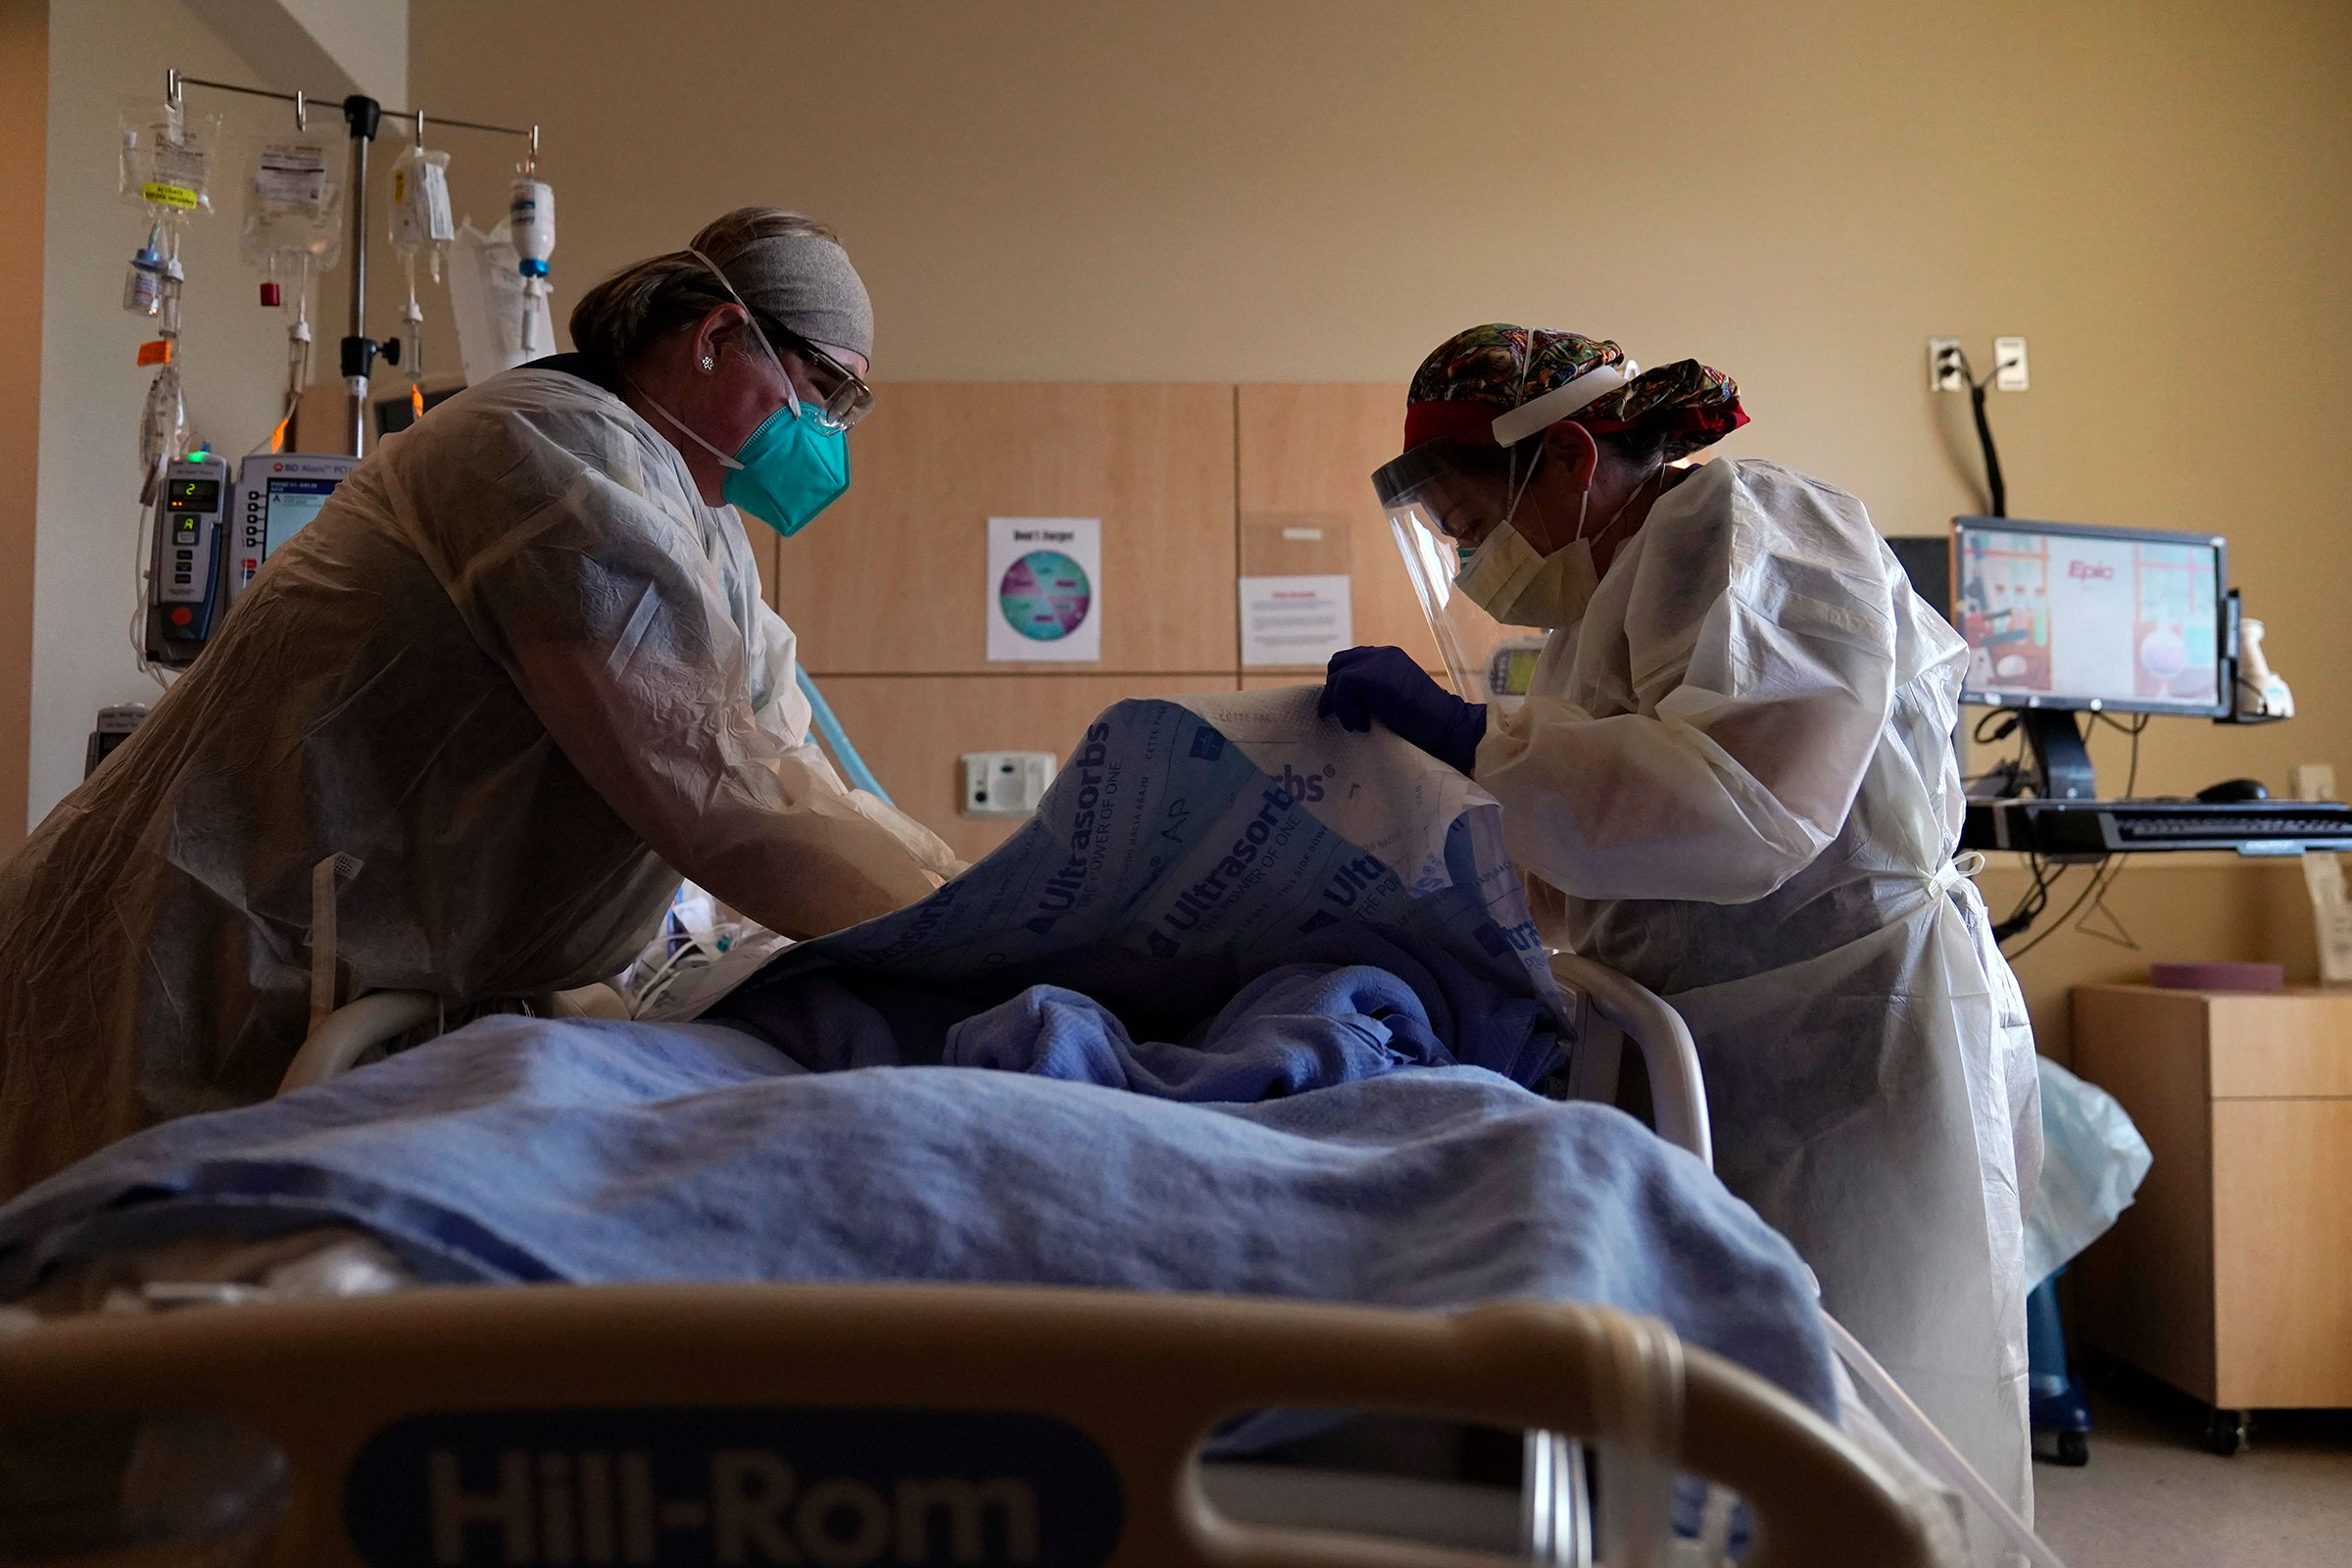 Registered nurses treat a Covid-19 patient at Providence Holy Cross Medical Center on December 22, 2020 in Los Angeles, California.